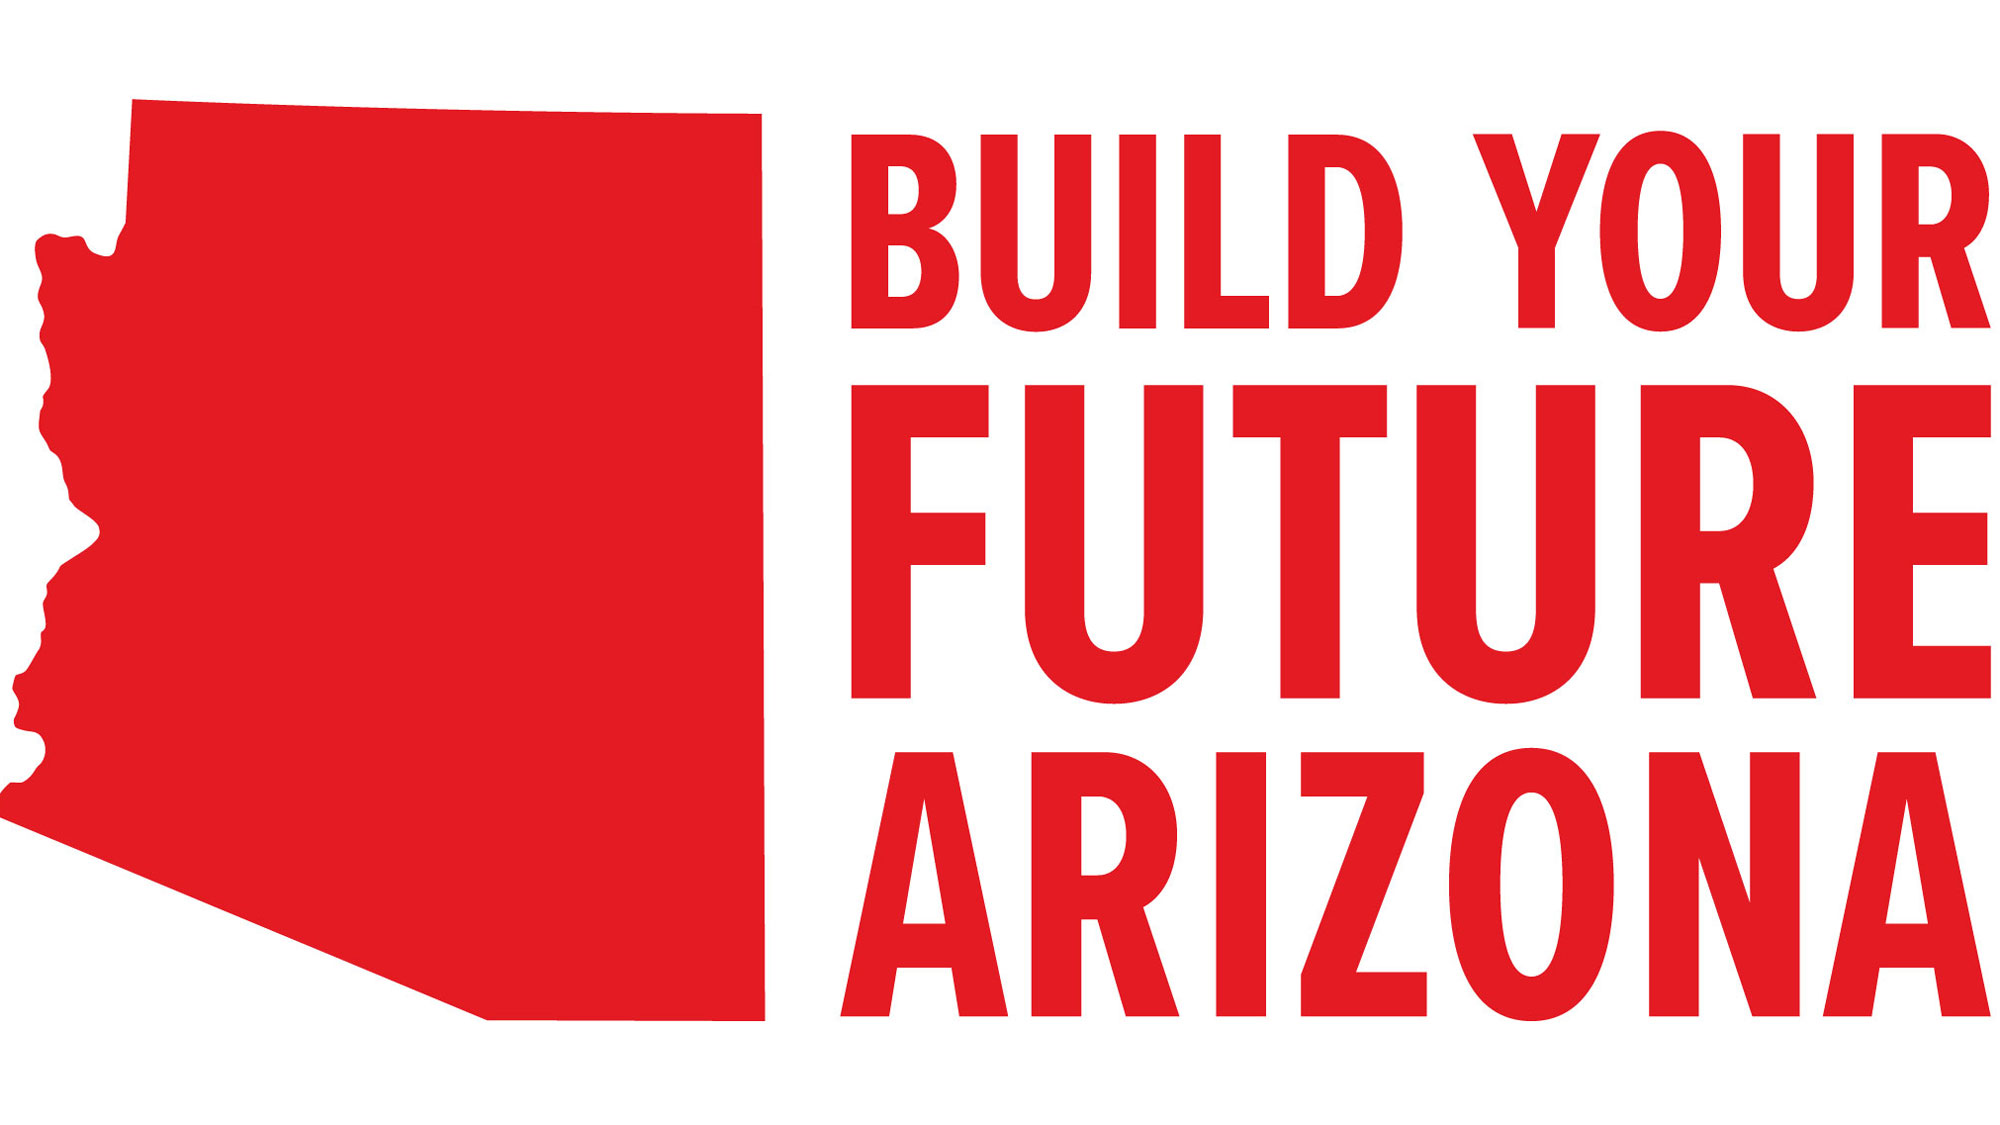 Build Your Future Arizona Established to Level the Playing Field for Careers in Construction